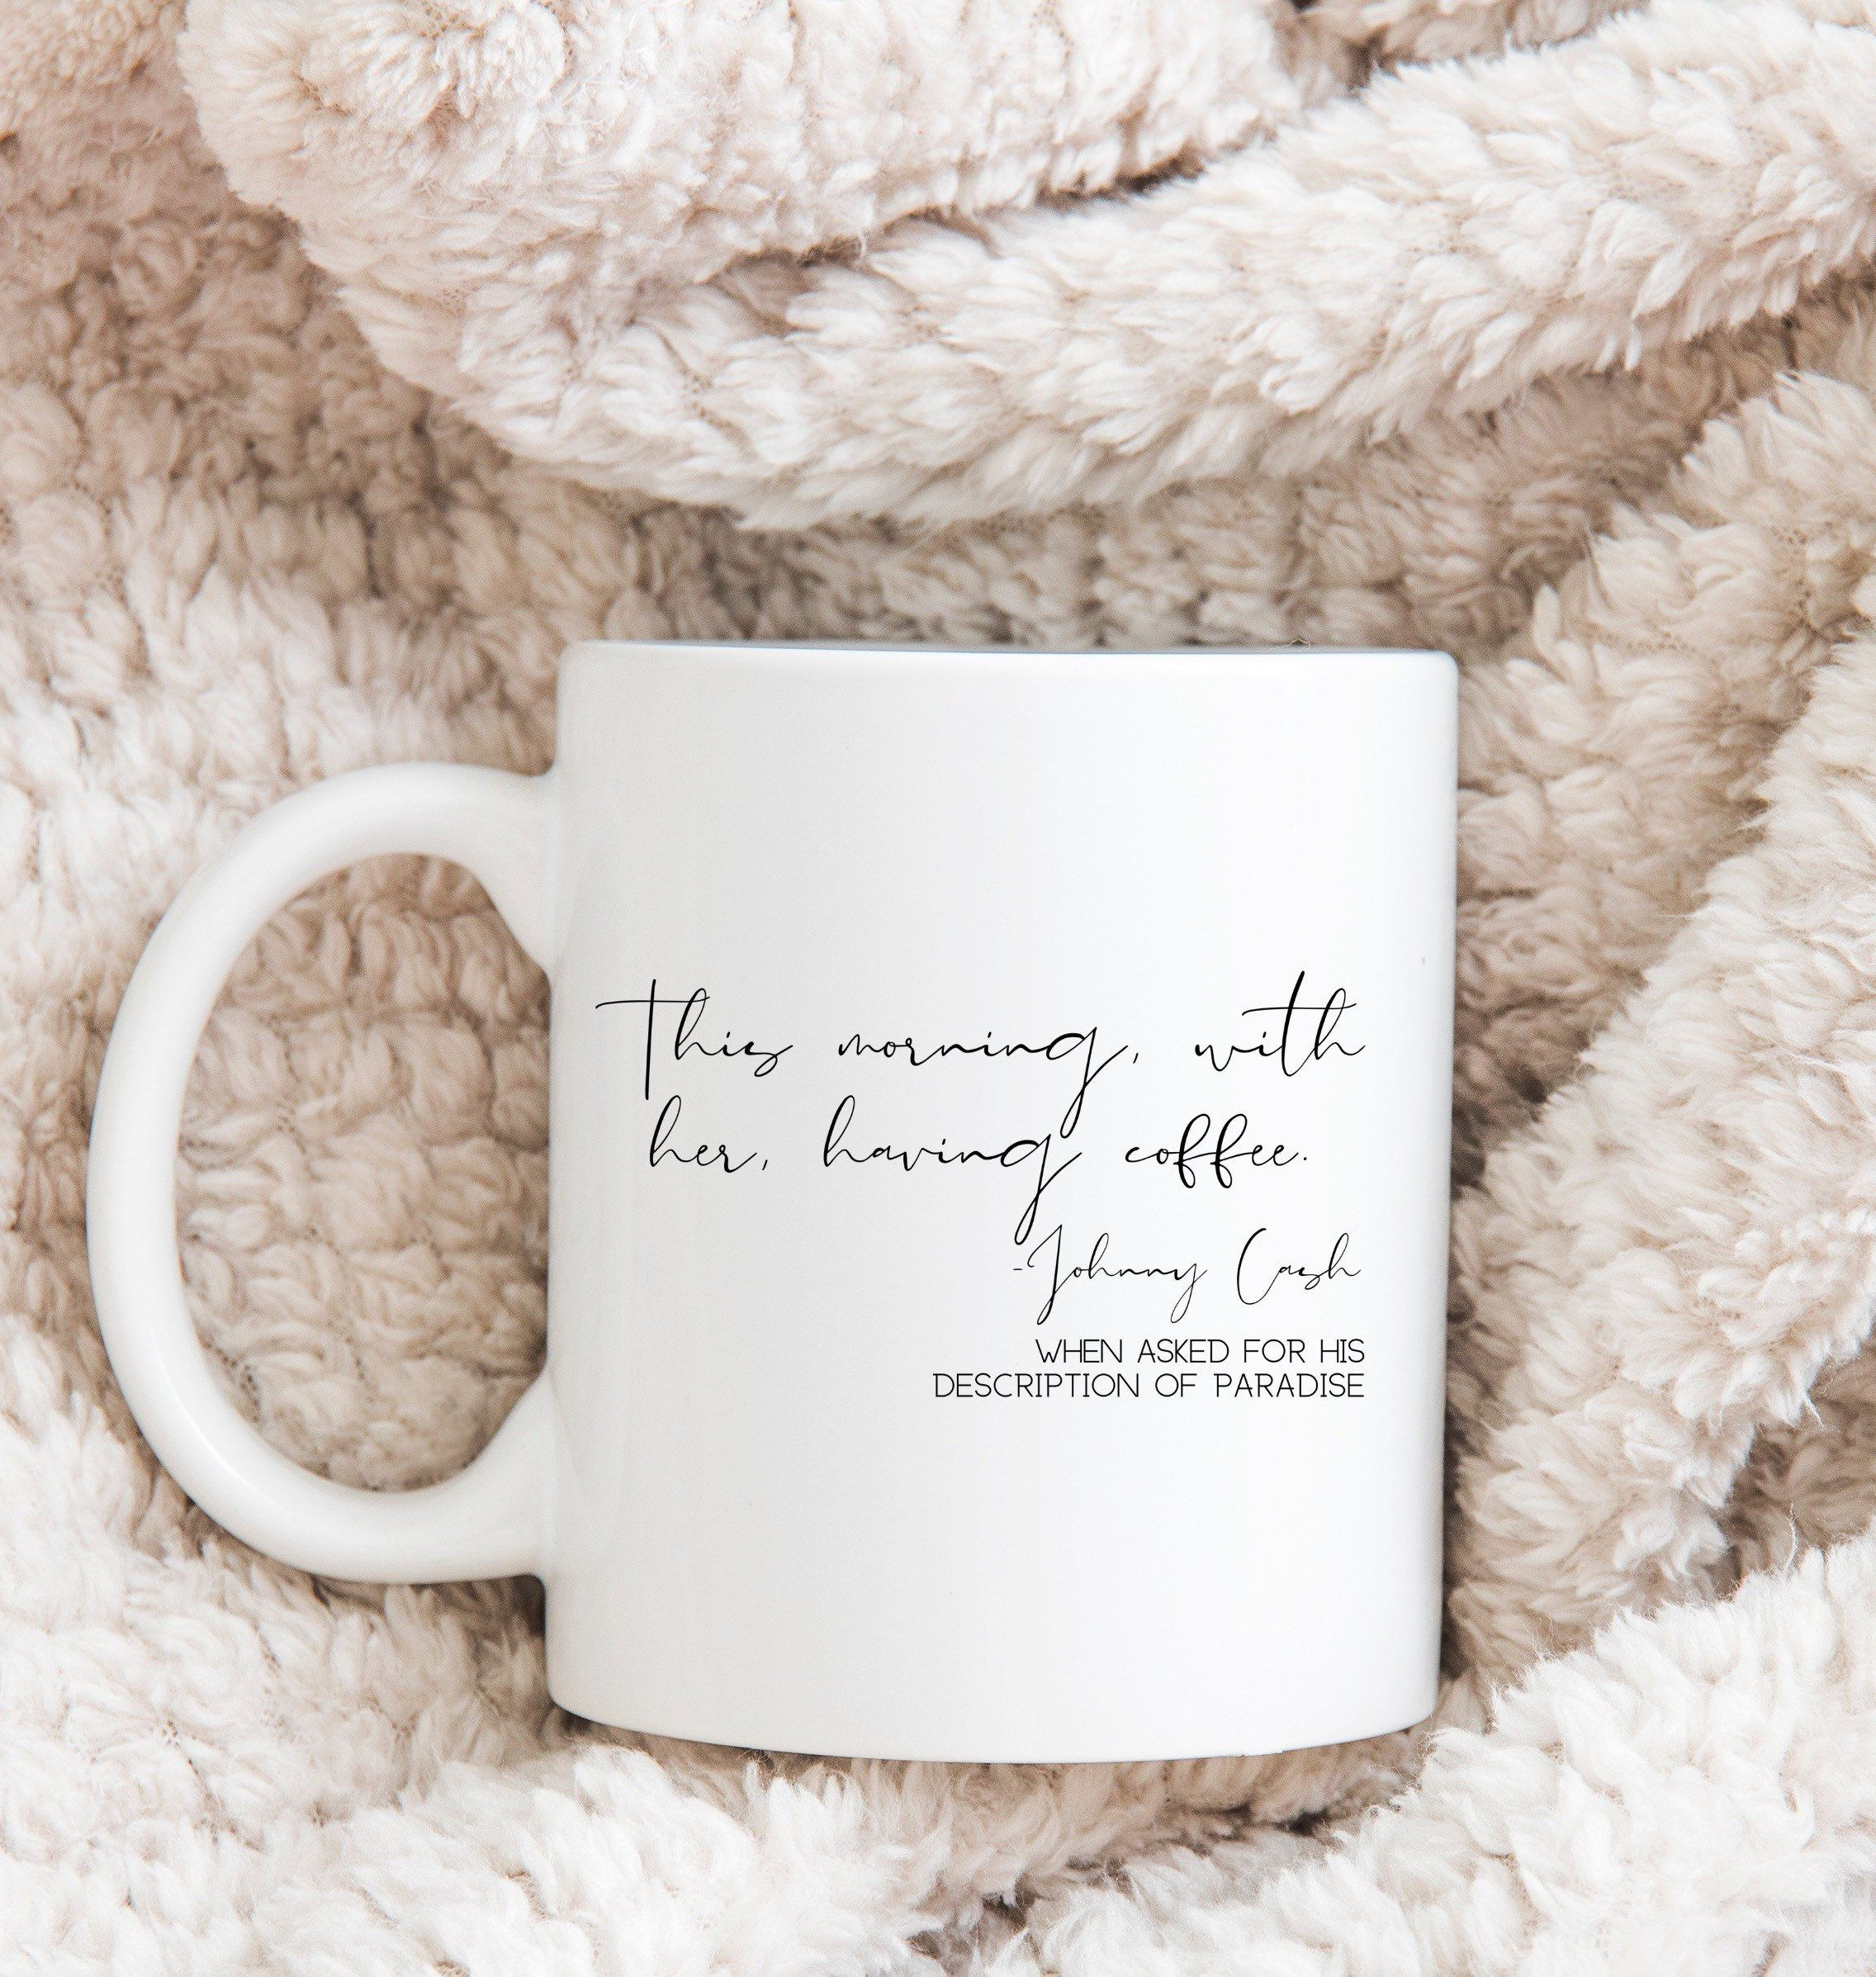 This Morning With Her Having Coffee, Johnny Cash Quote